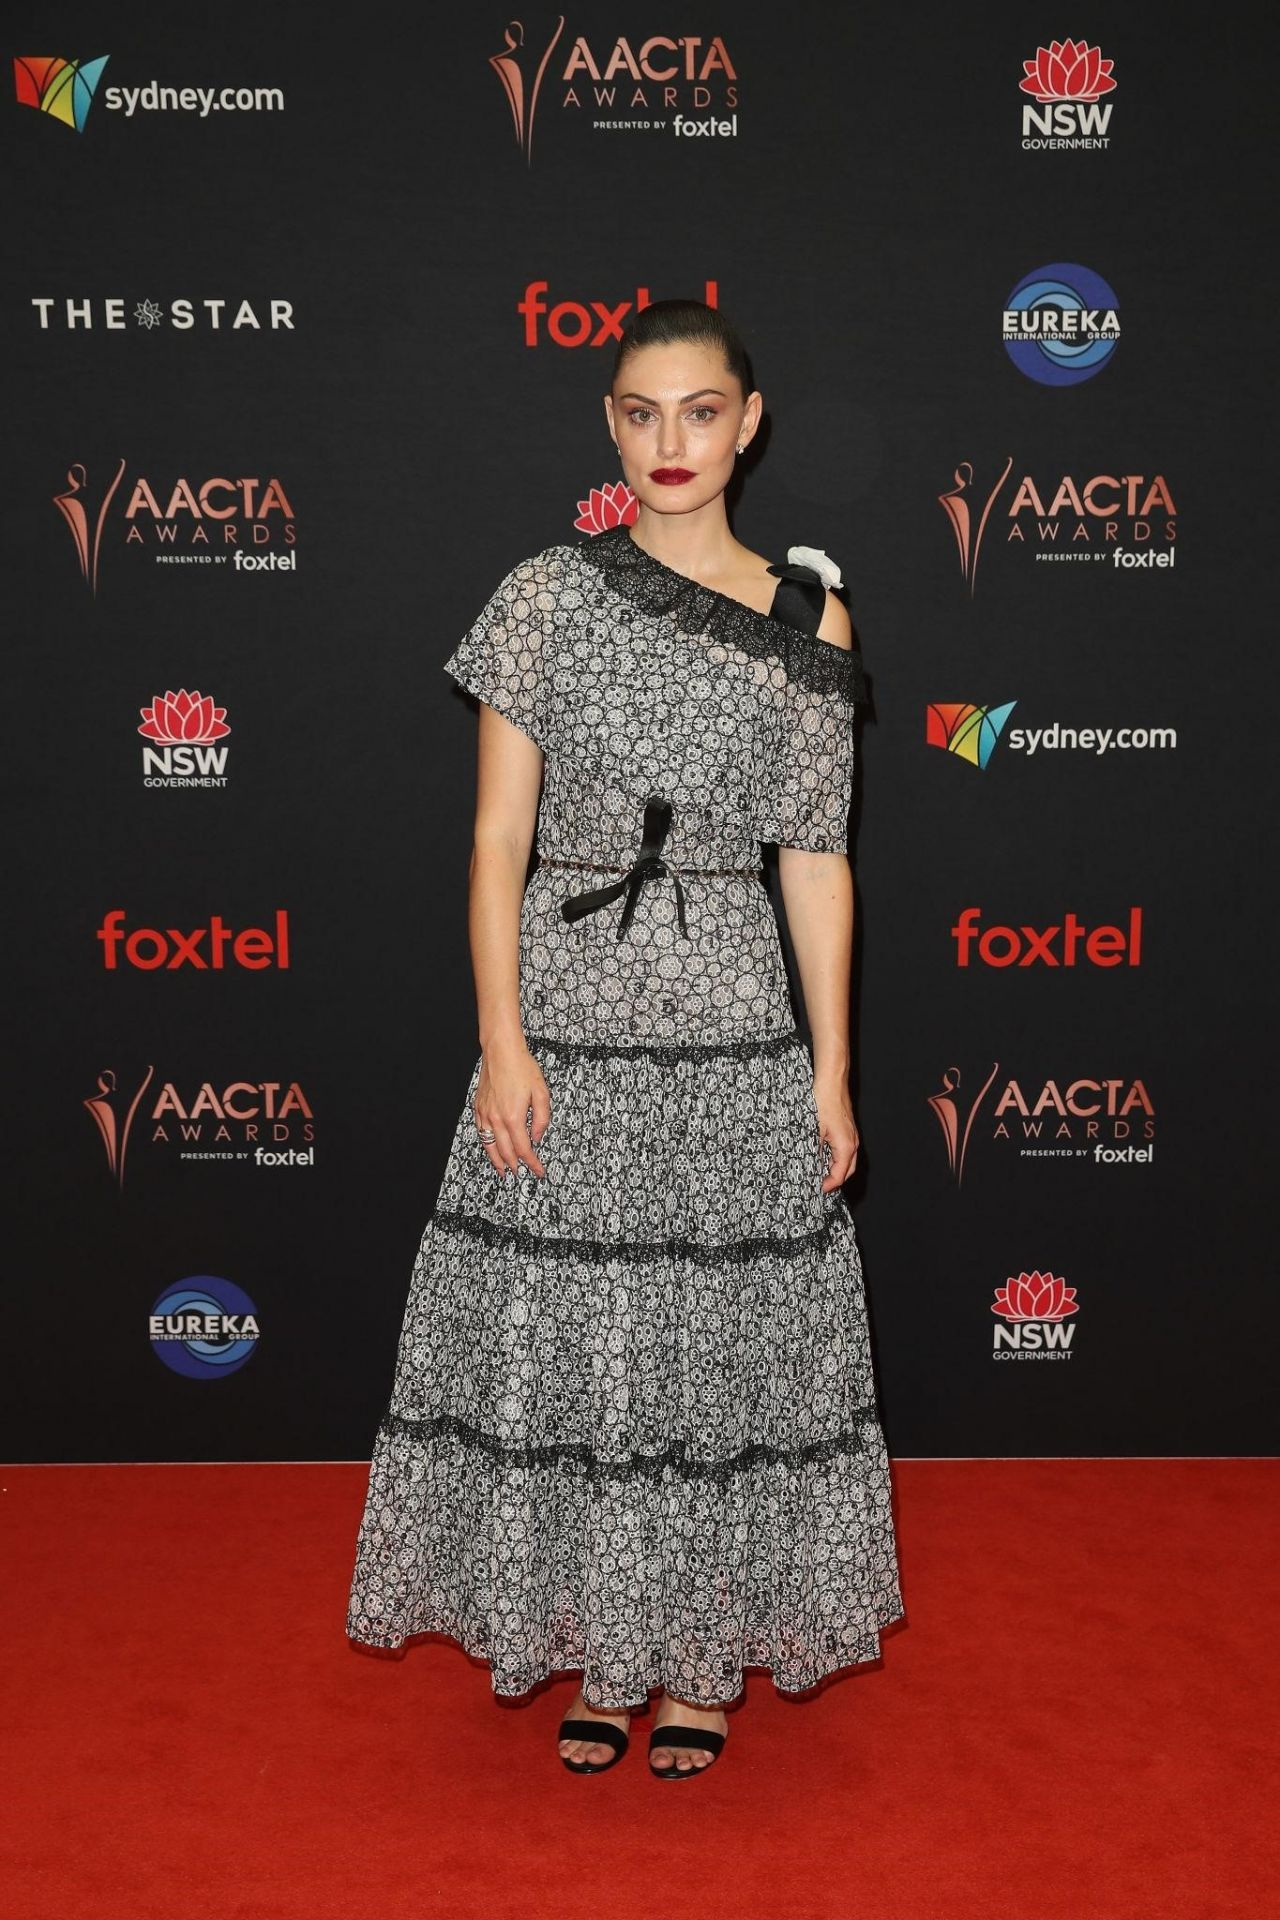 phoebe-tonkin-in-chanel-2019-aacta-awards-in-sydney